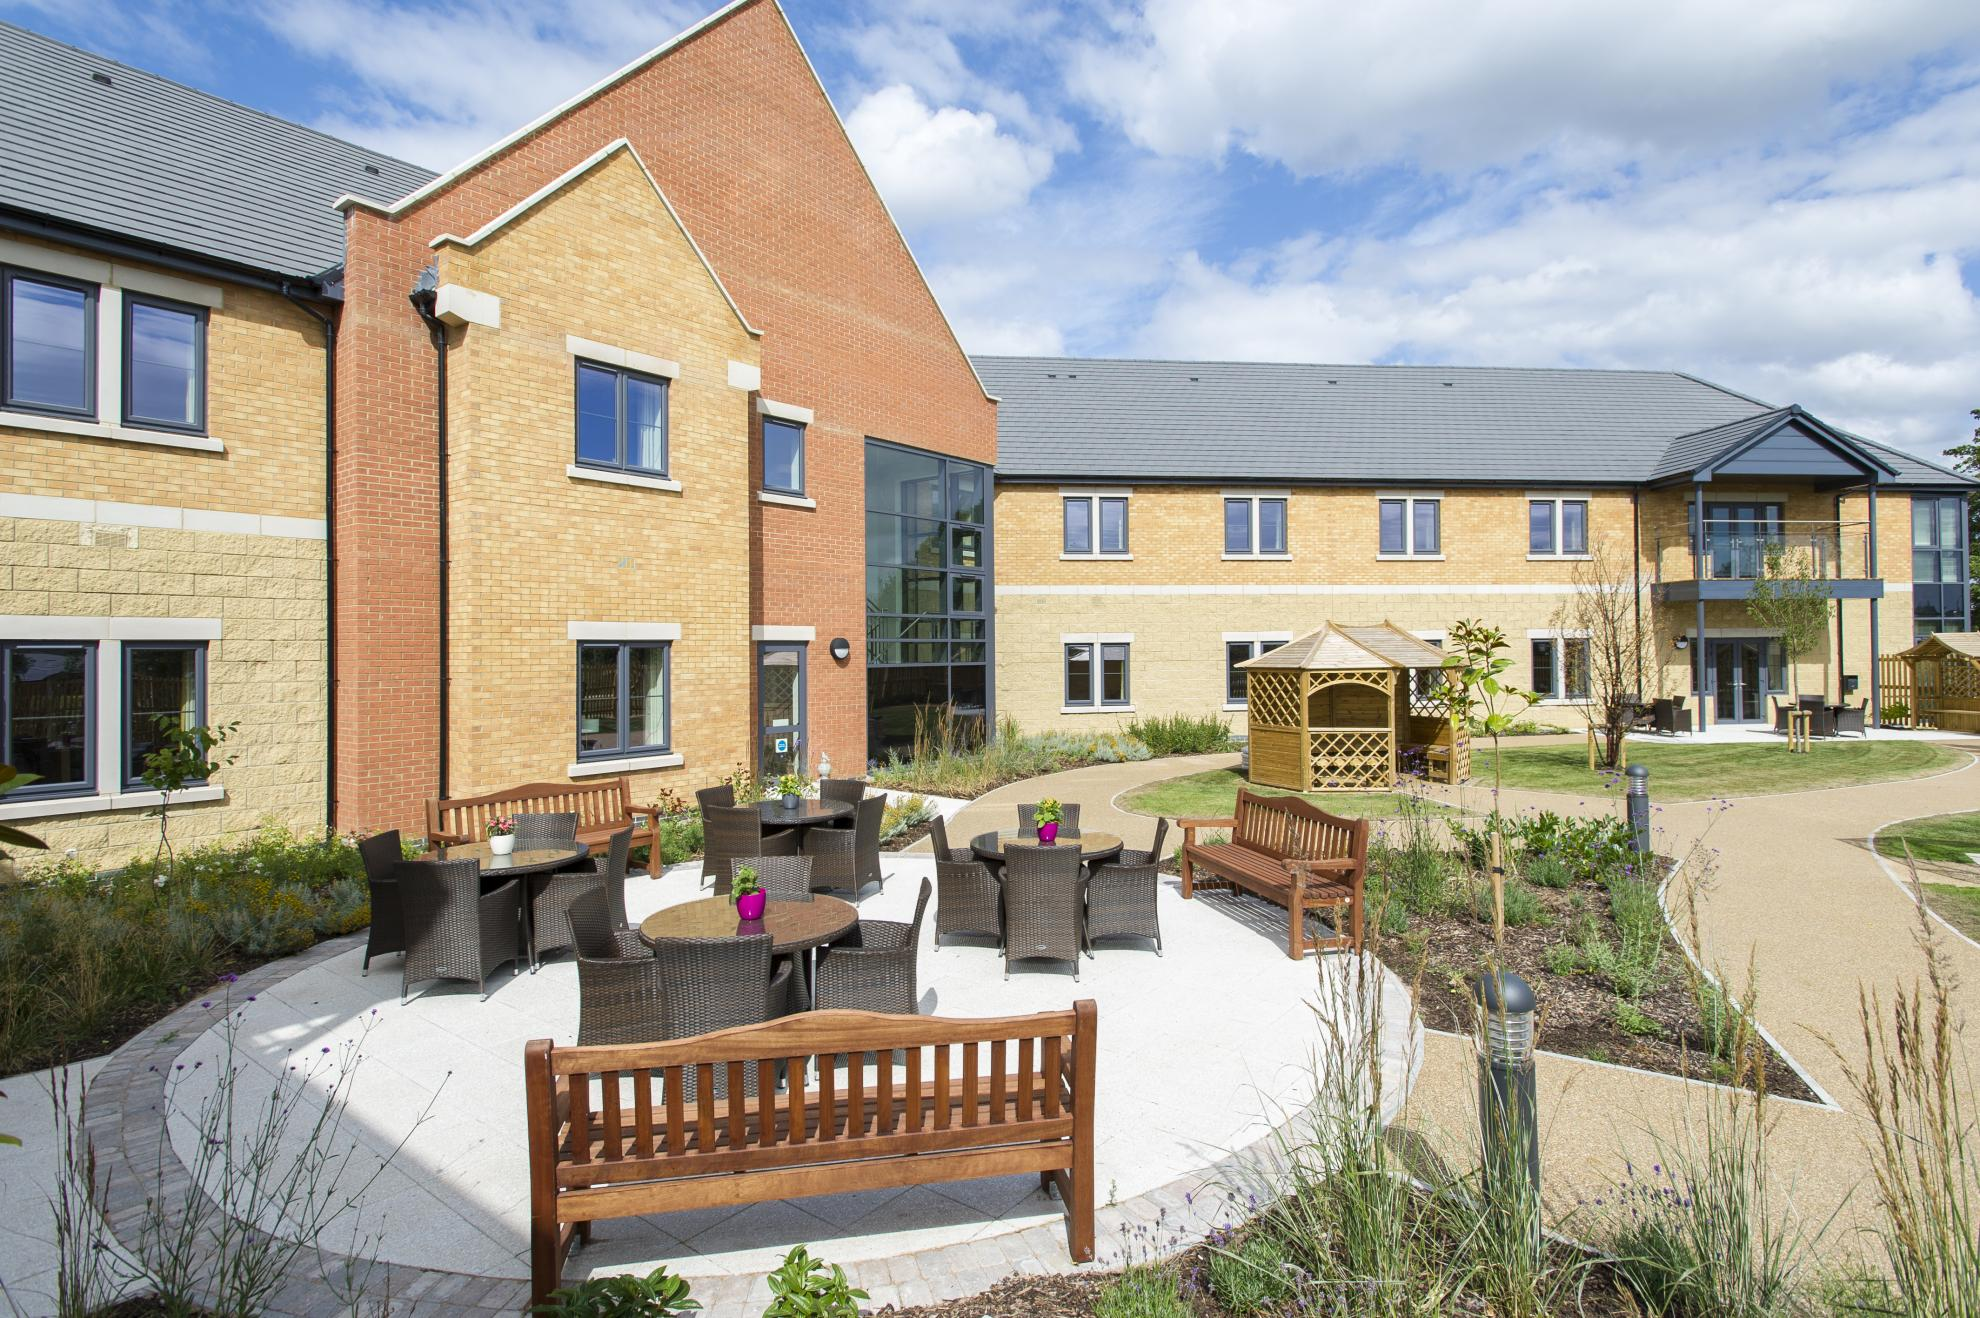 Types Of Learning Disabilities >> Juniper House Residential Care Home - Worcester | Sanctuary Care